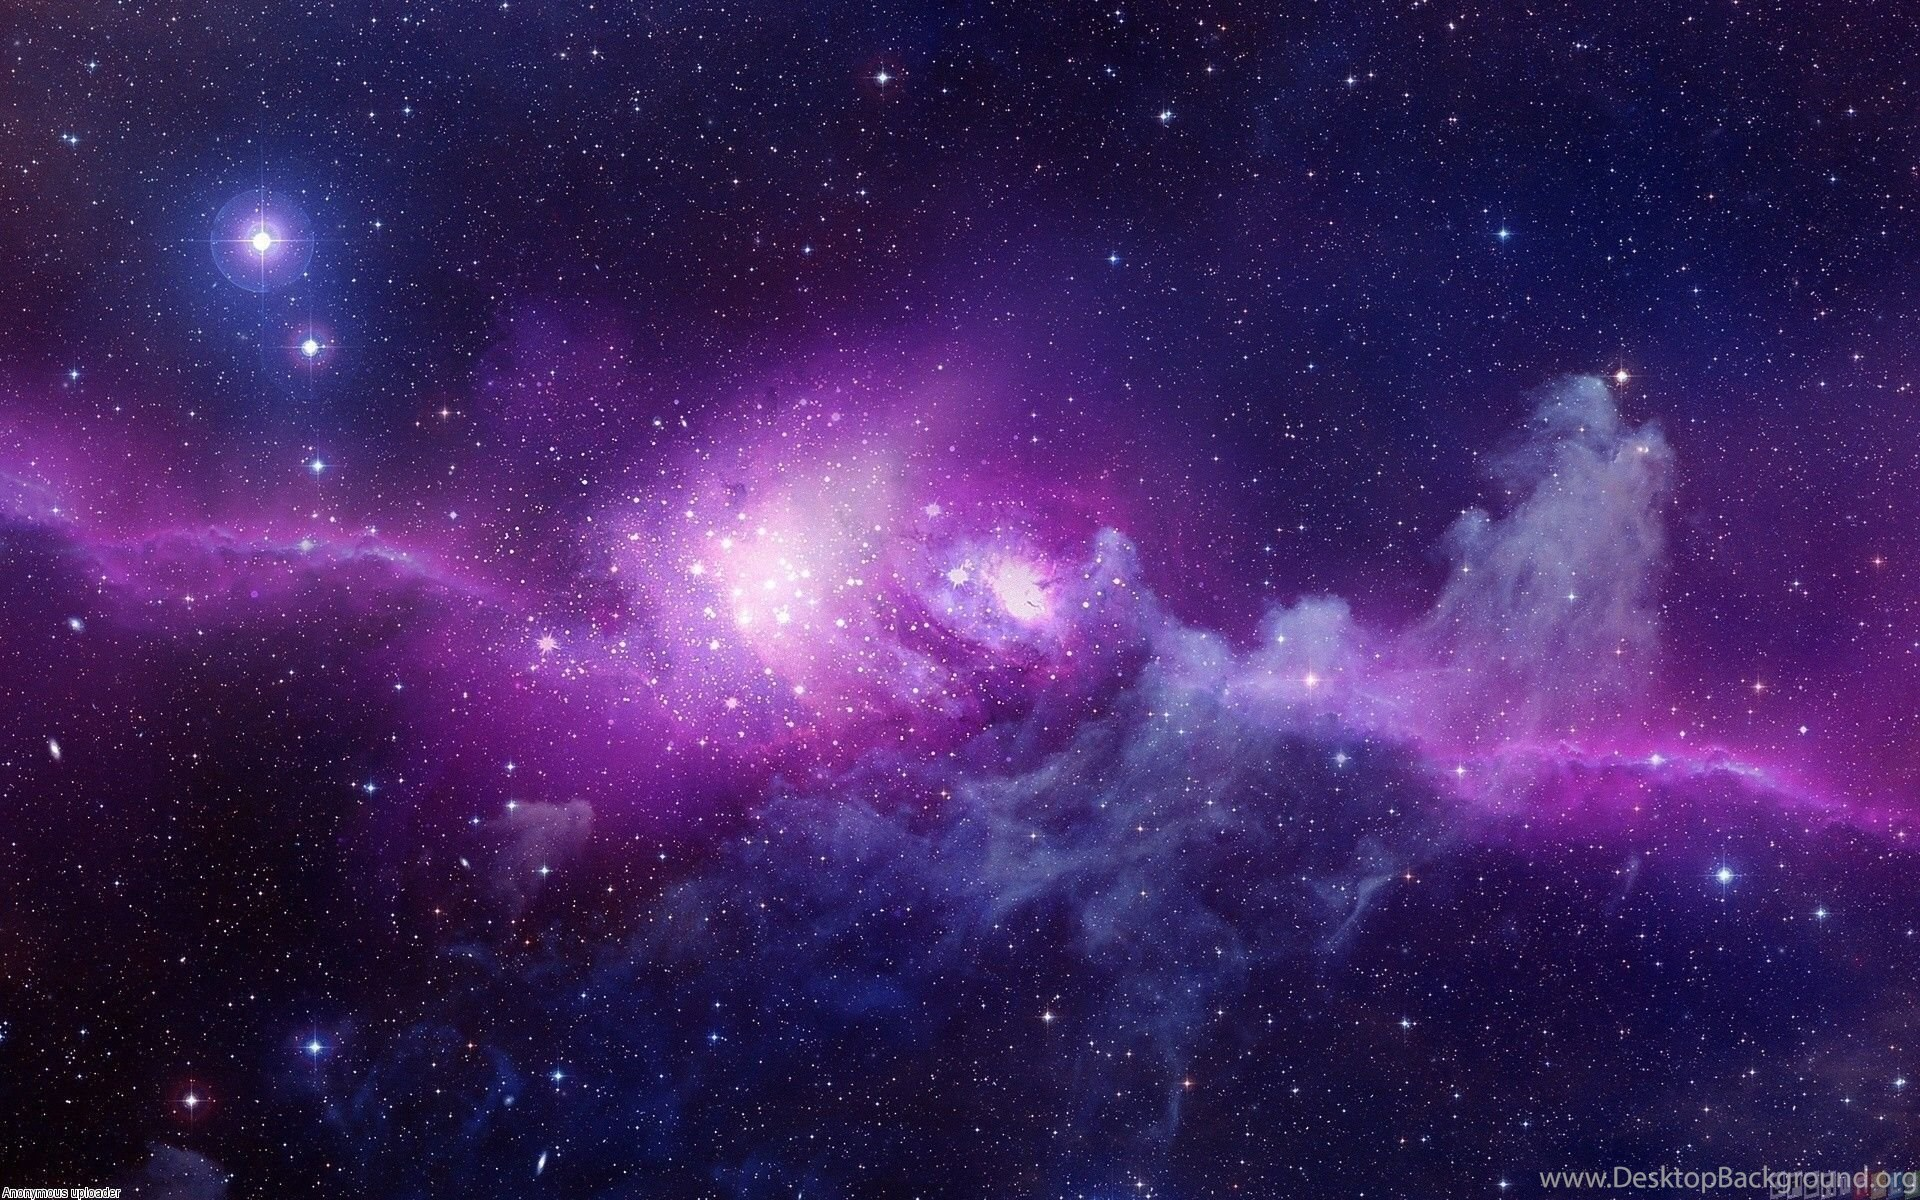 Stars in space backgrounds desktop background widescreen voltagebd Image collections